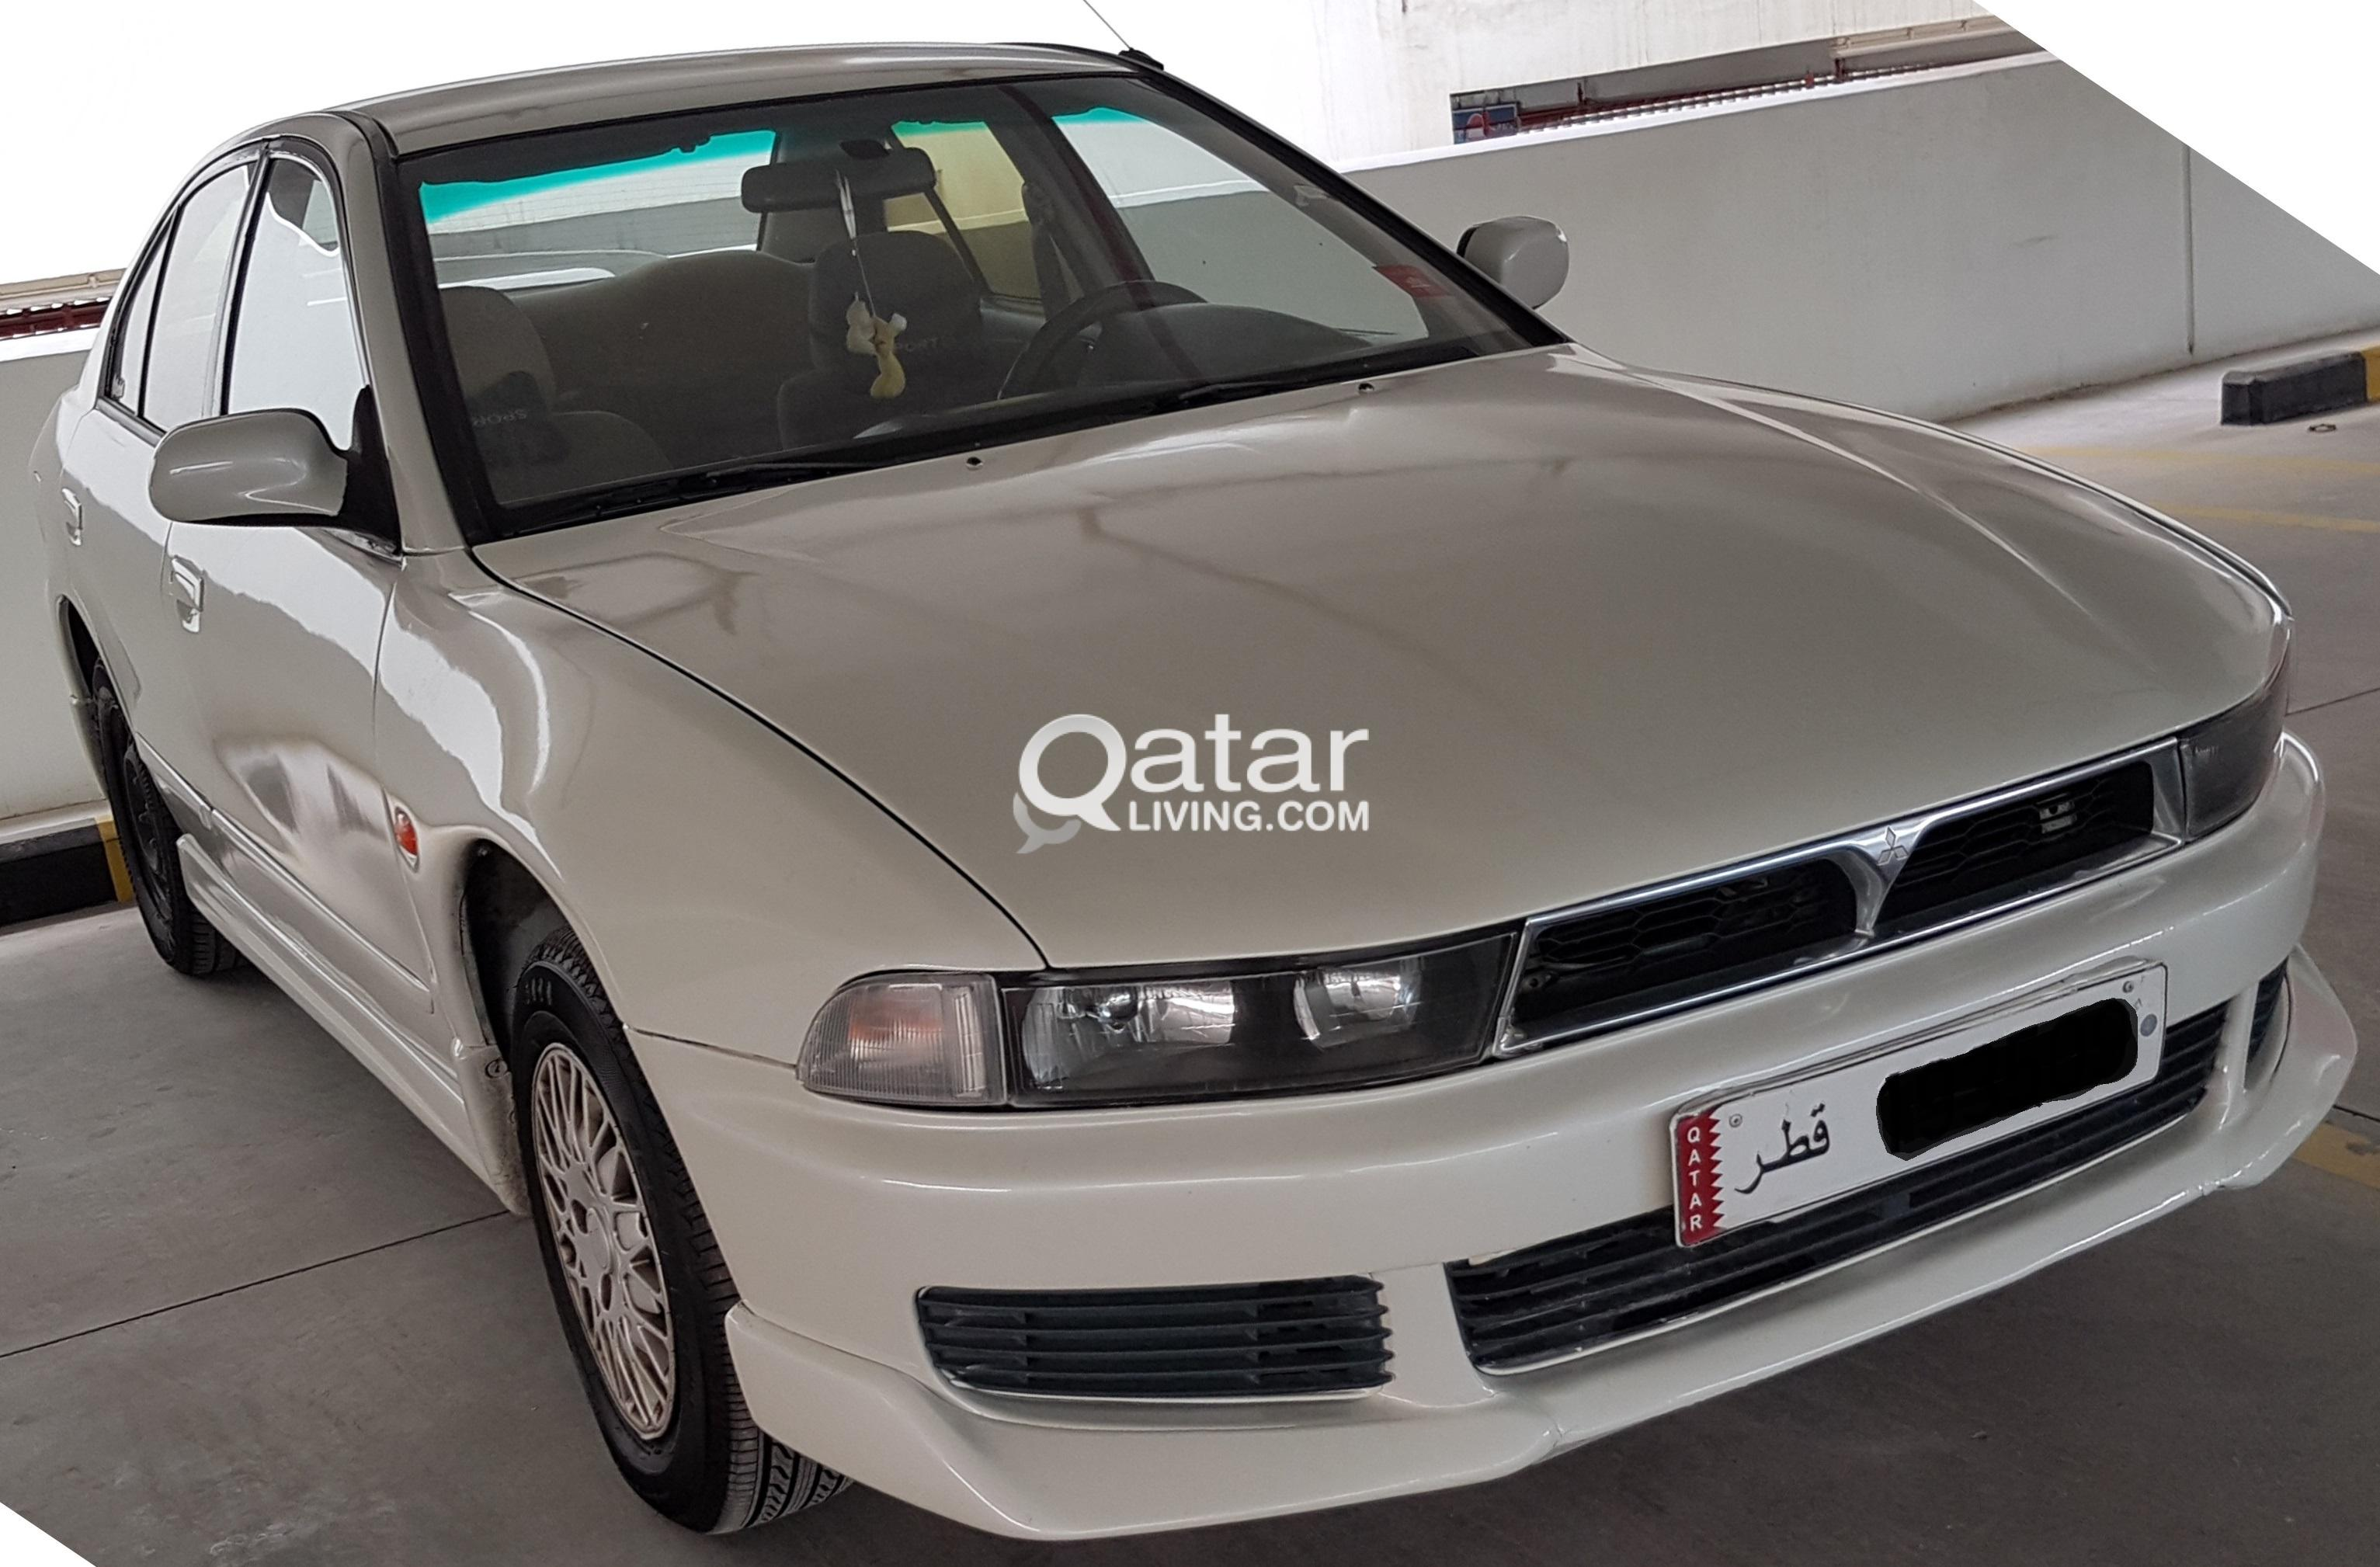 sold sale mitsubishi auction for of item galant city july image